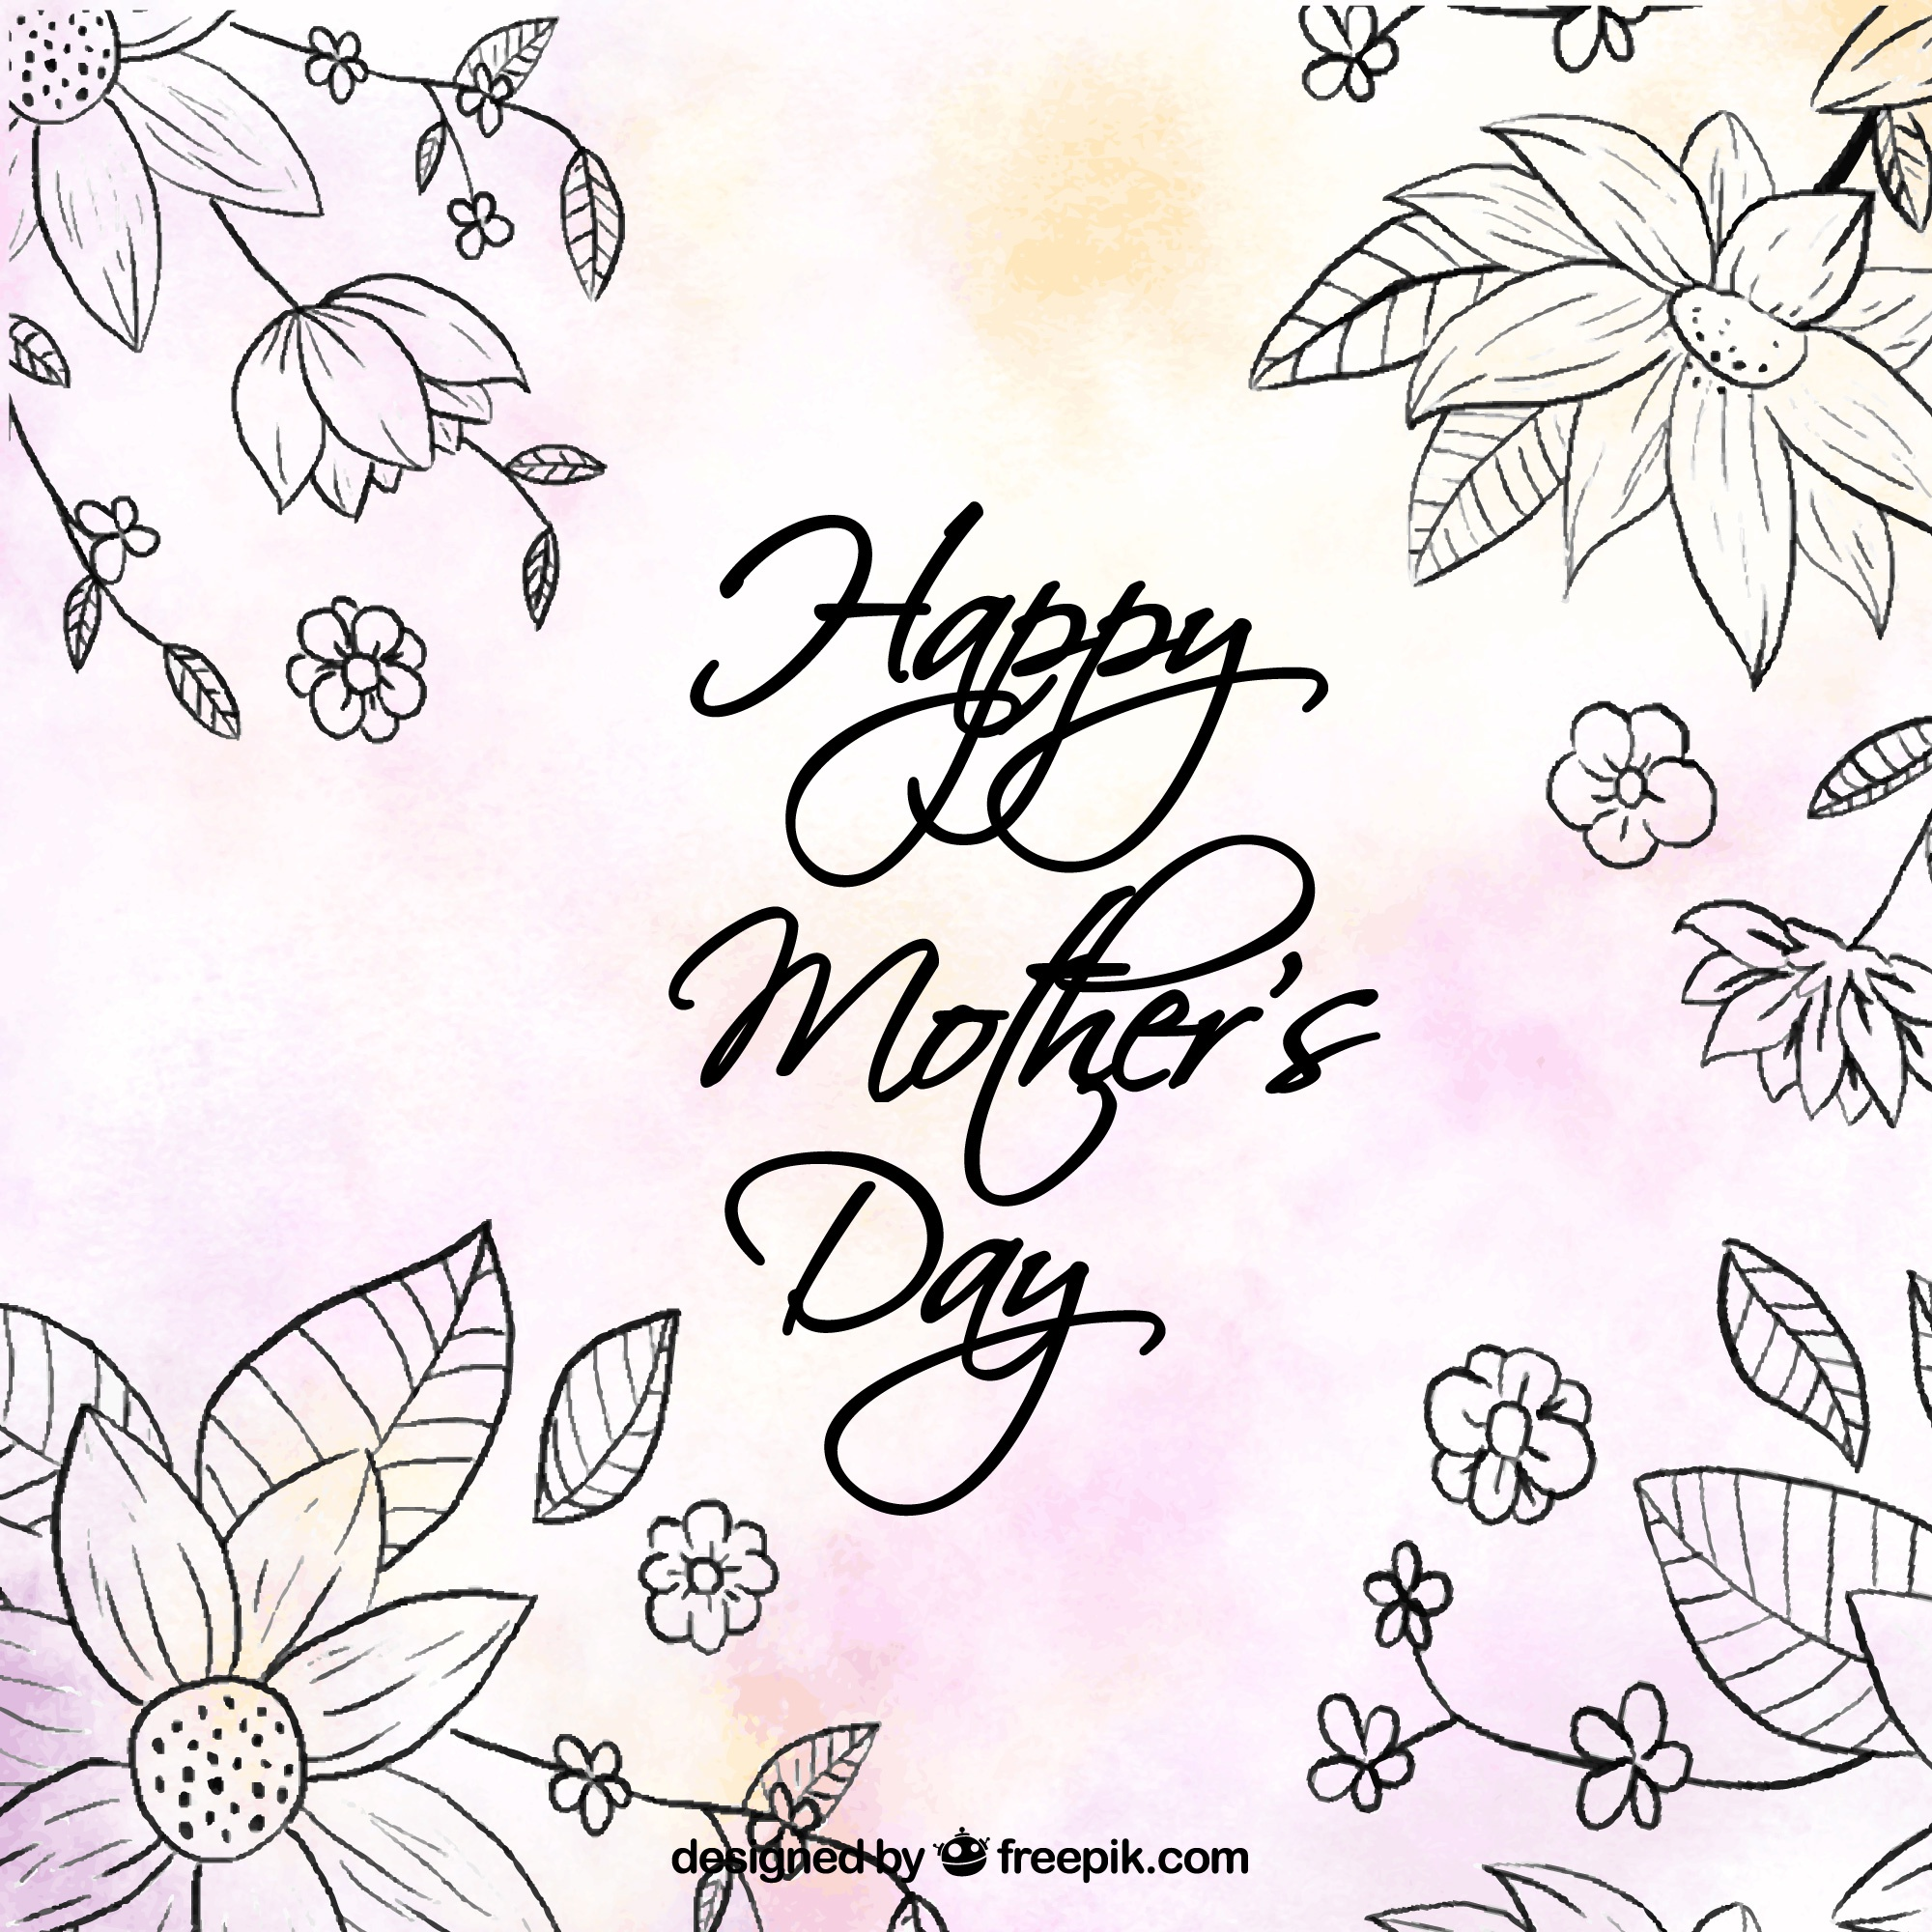 Cute background with flowers and color details for mother's day